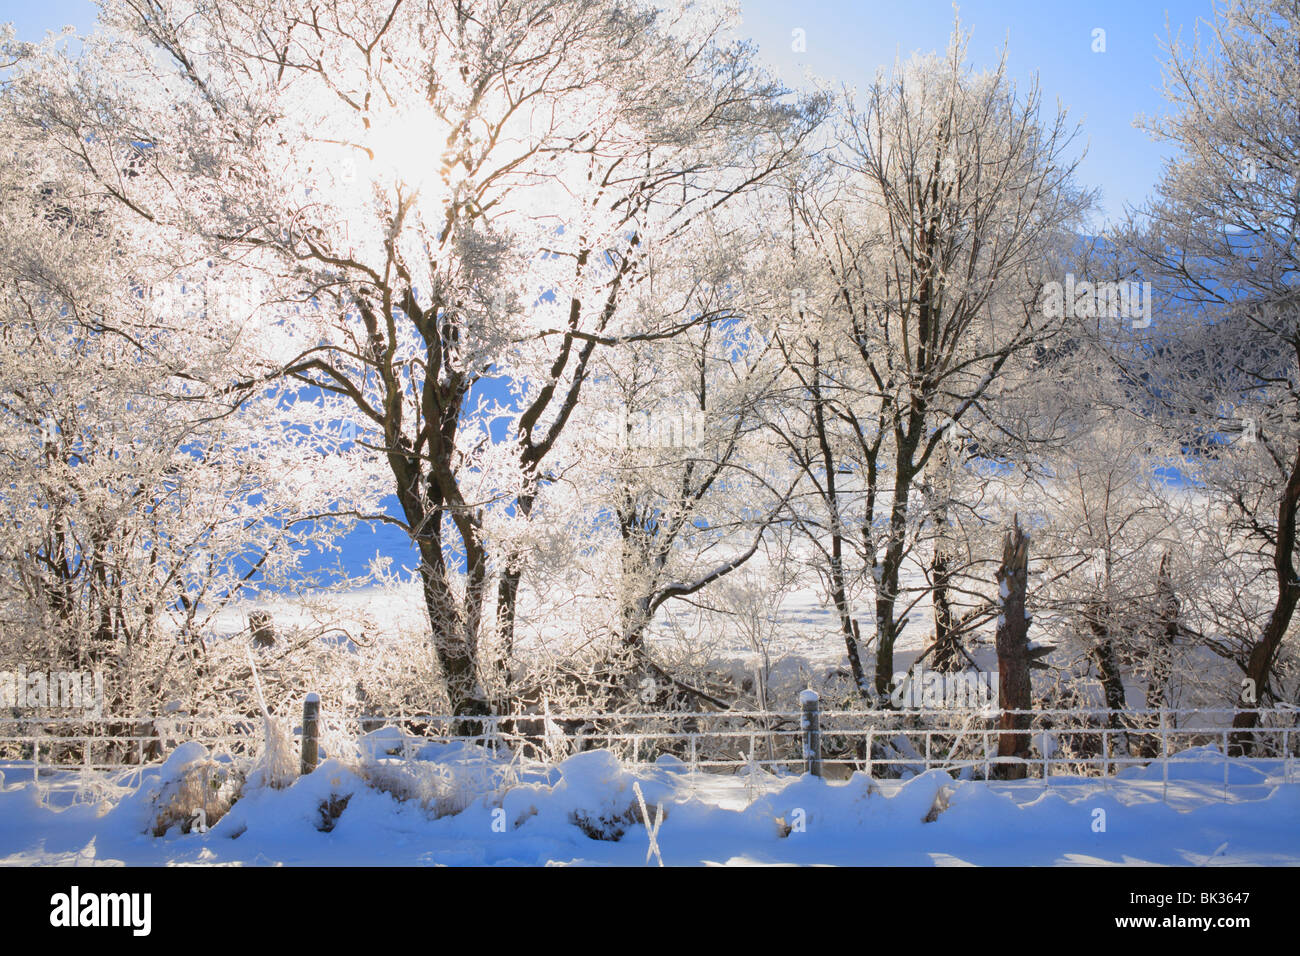 Sunshine through ice covered trees beside a river, after several days of extreme cold and still air. Powys, Wales. - Stock Image